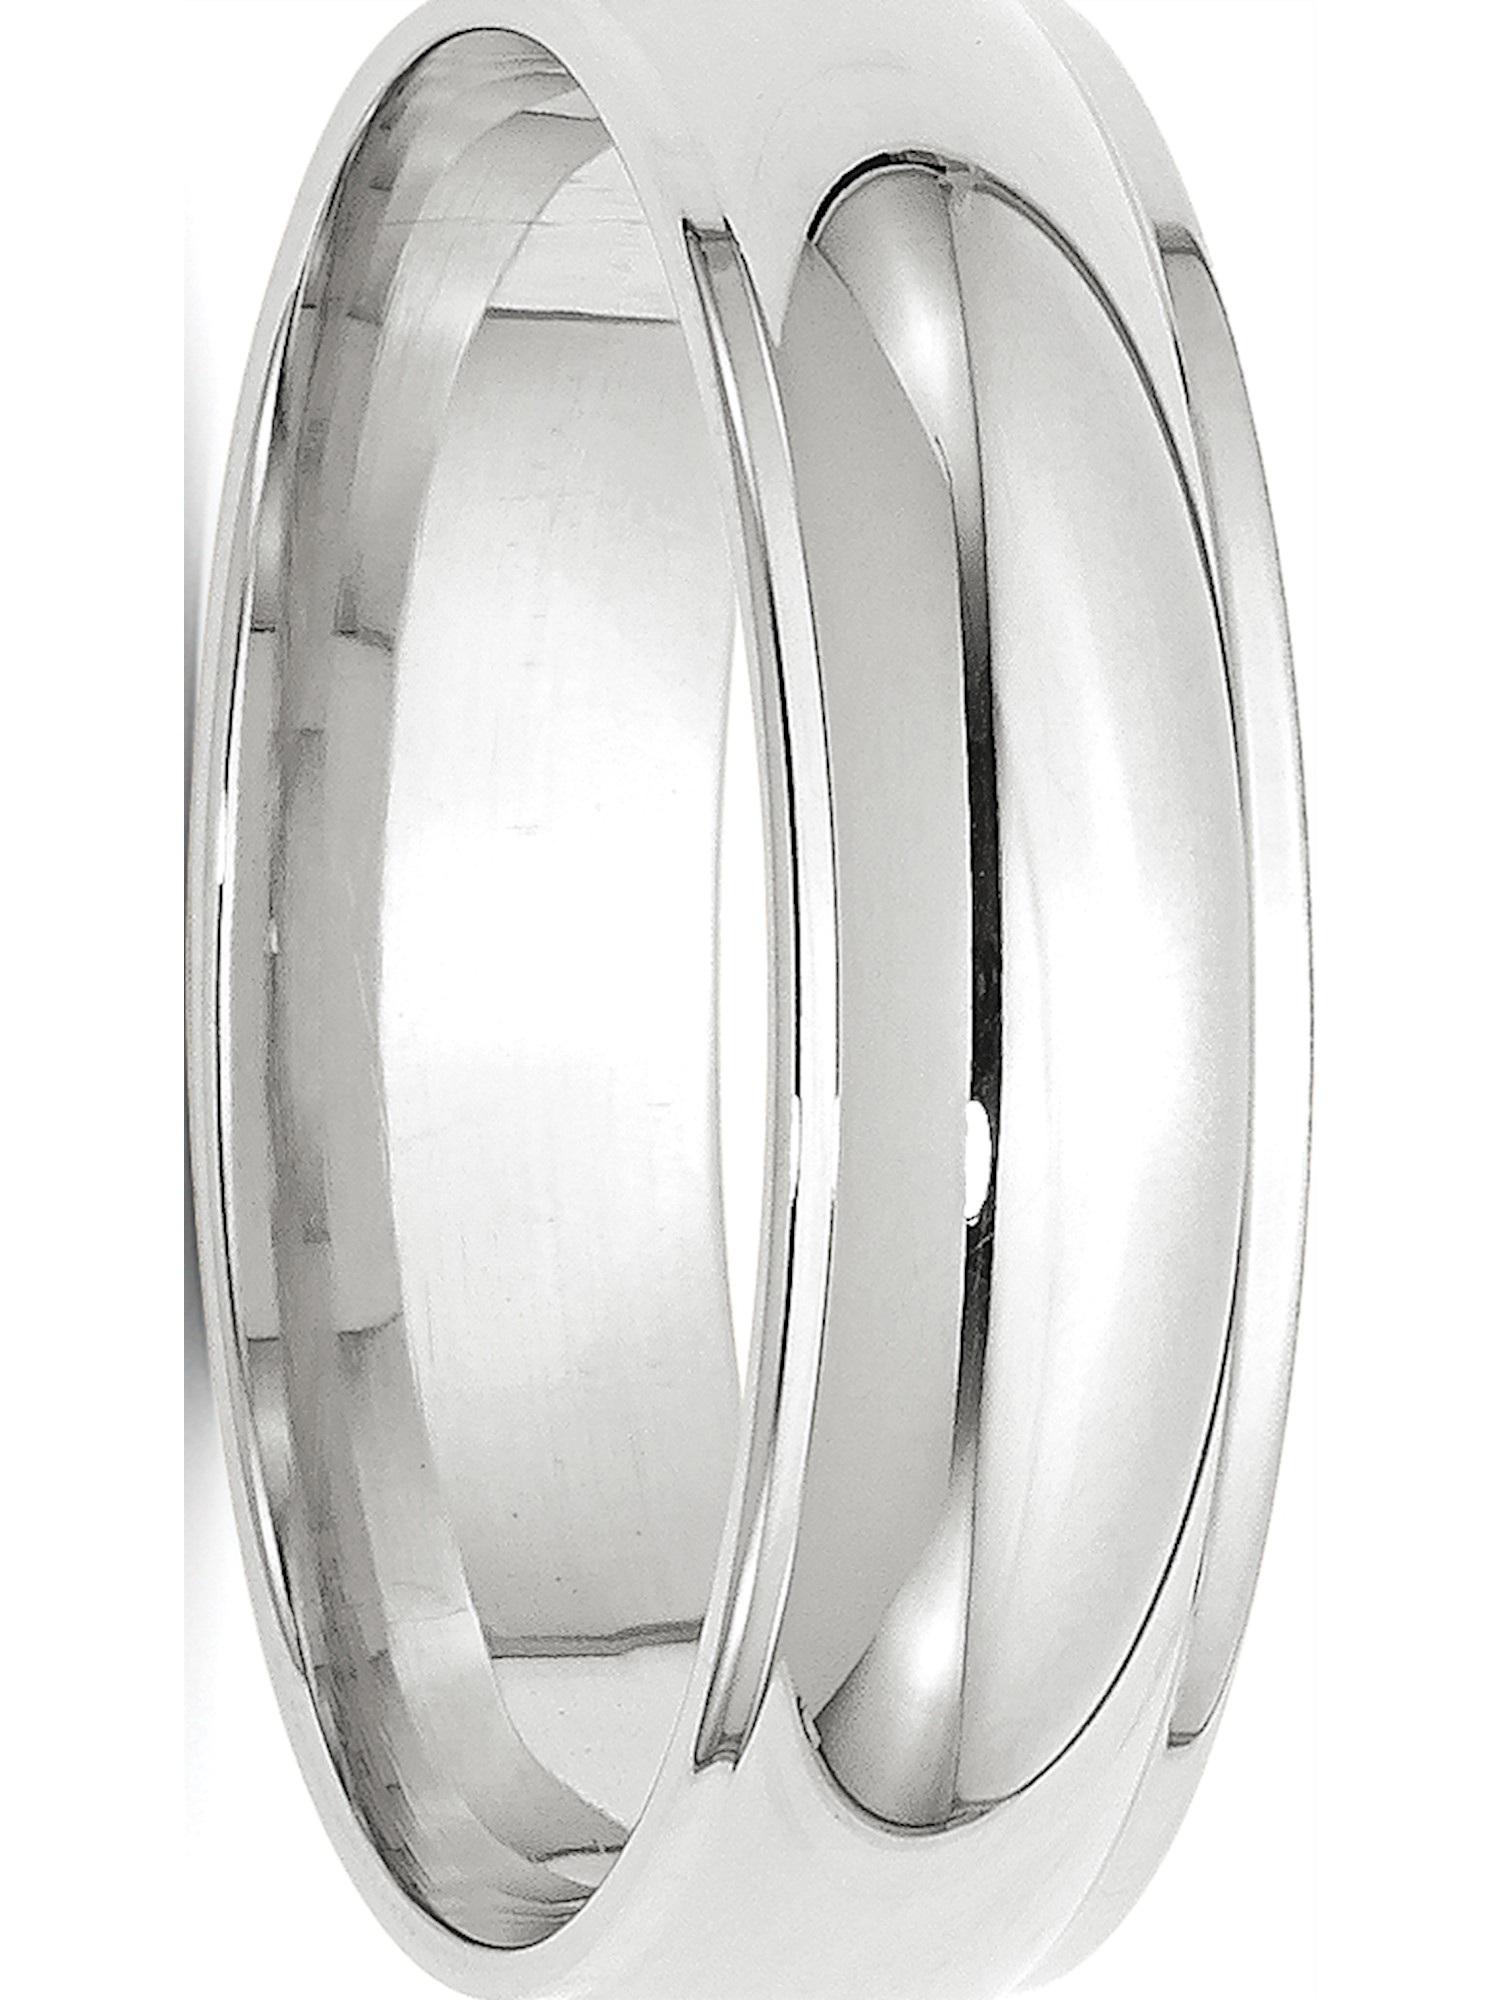 14KW 3mm Half Round with Edge Band Size 10.5 Size 10.5 Length Width 3